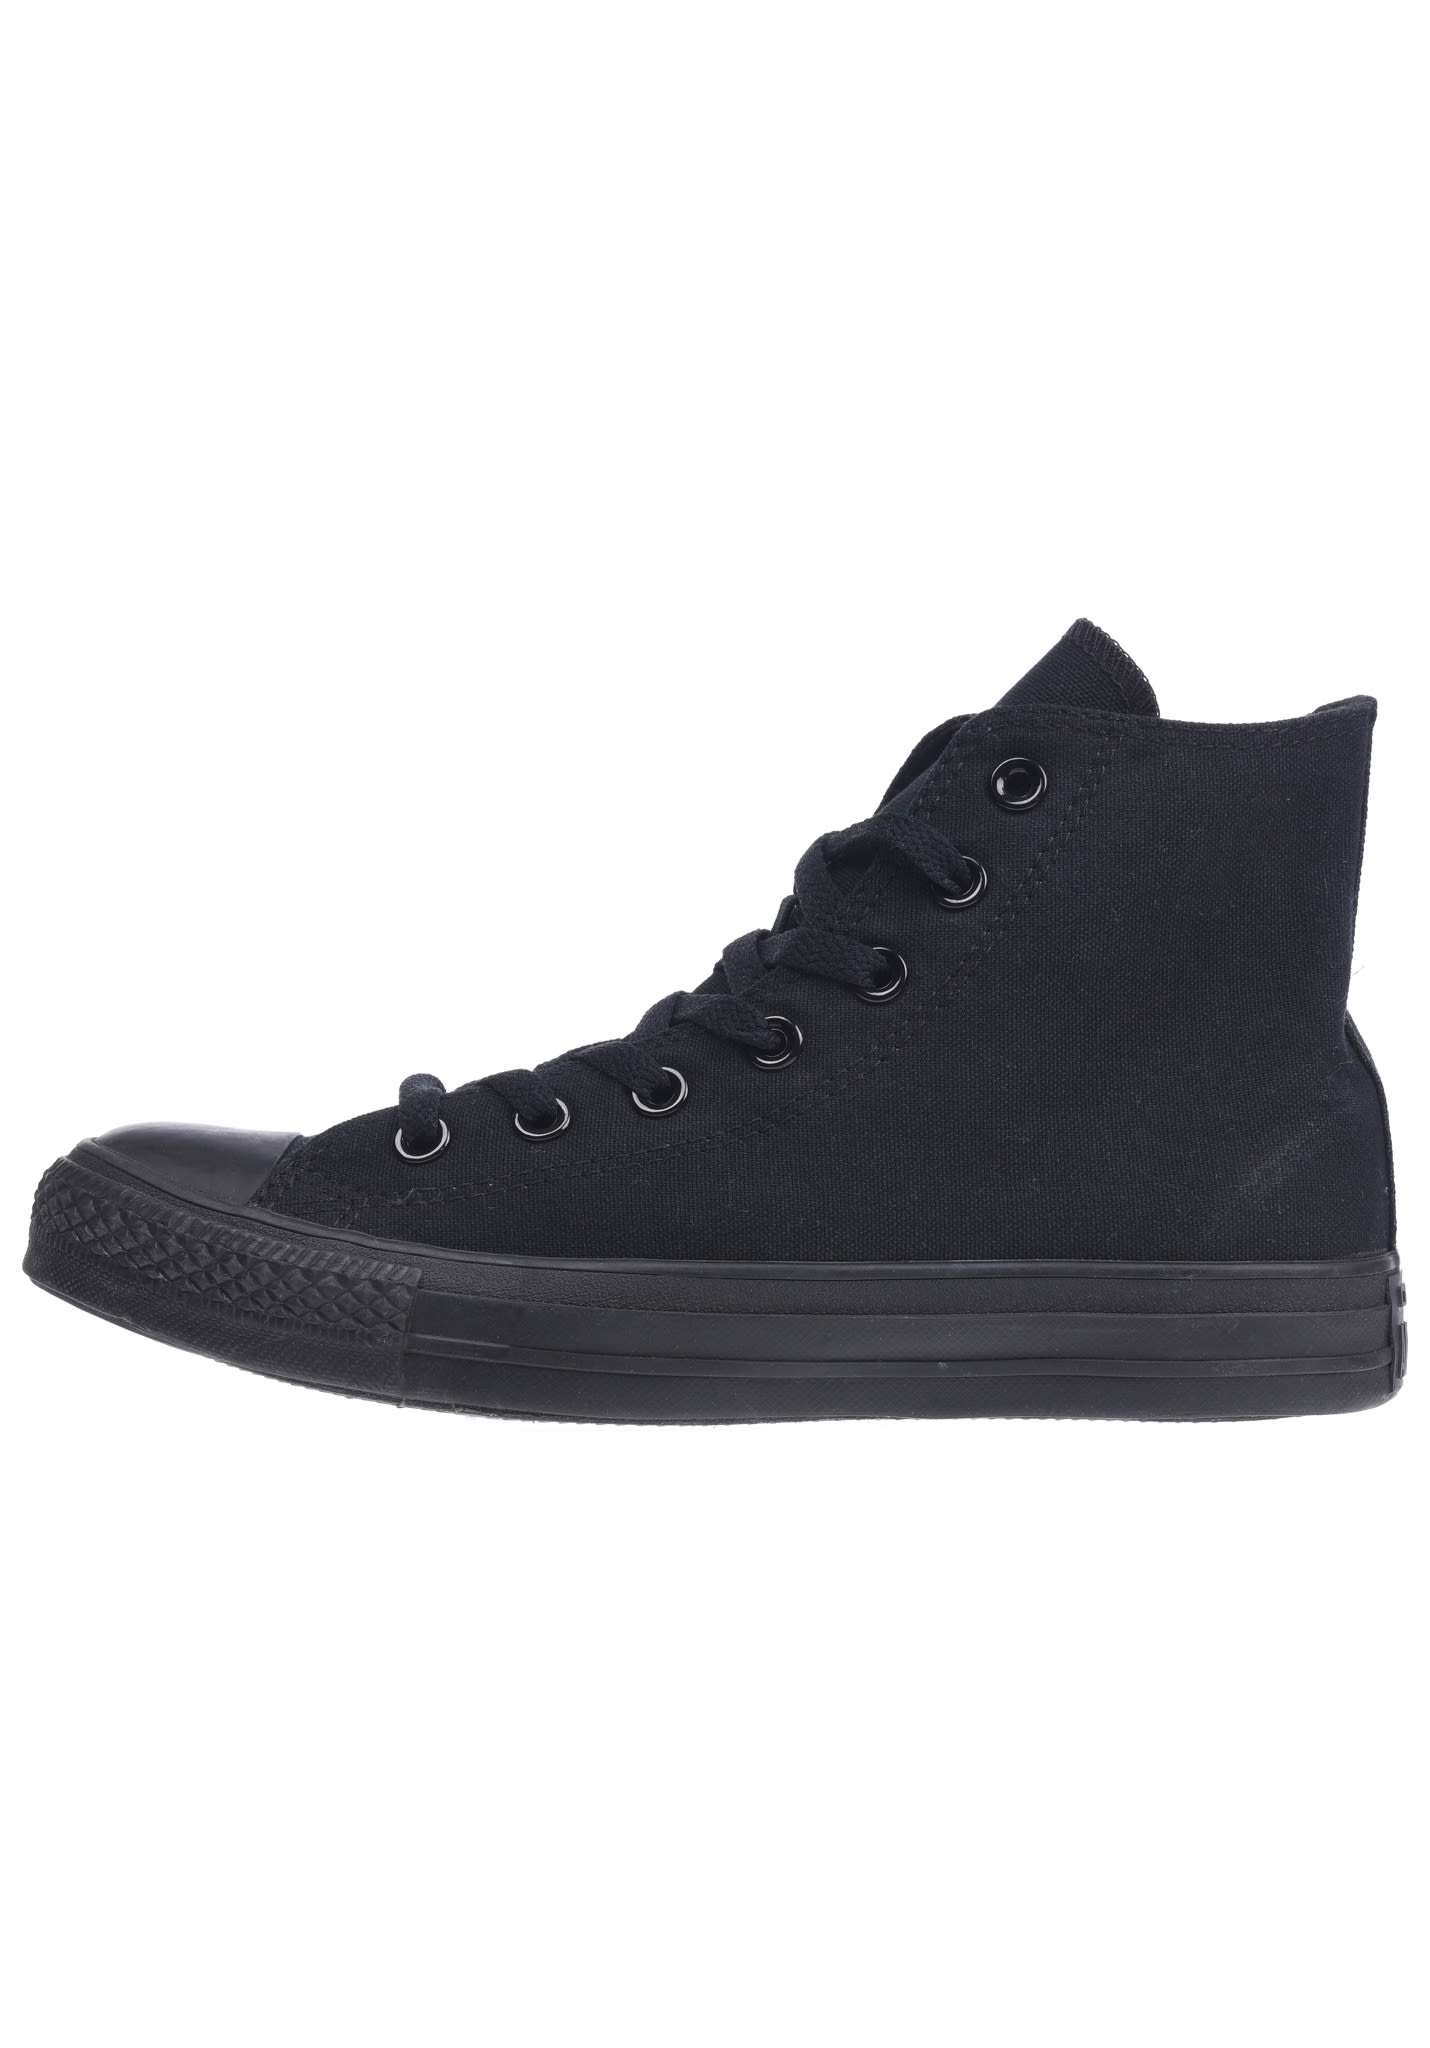 600bfc5d6fd Converse Chuck Taylor All Star Hi - Sneakers - Black - Planet Sports